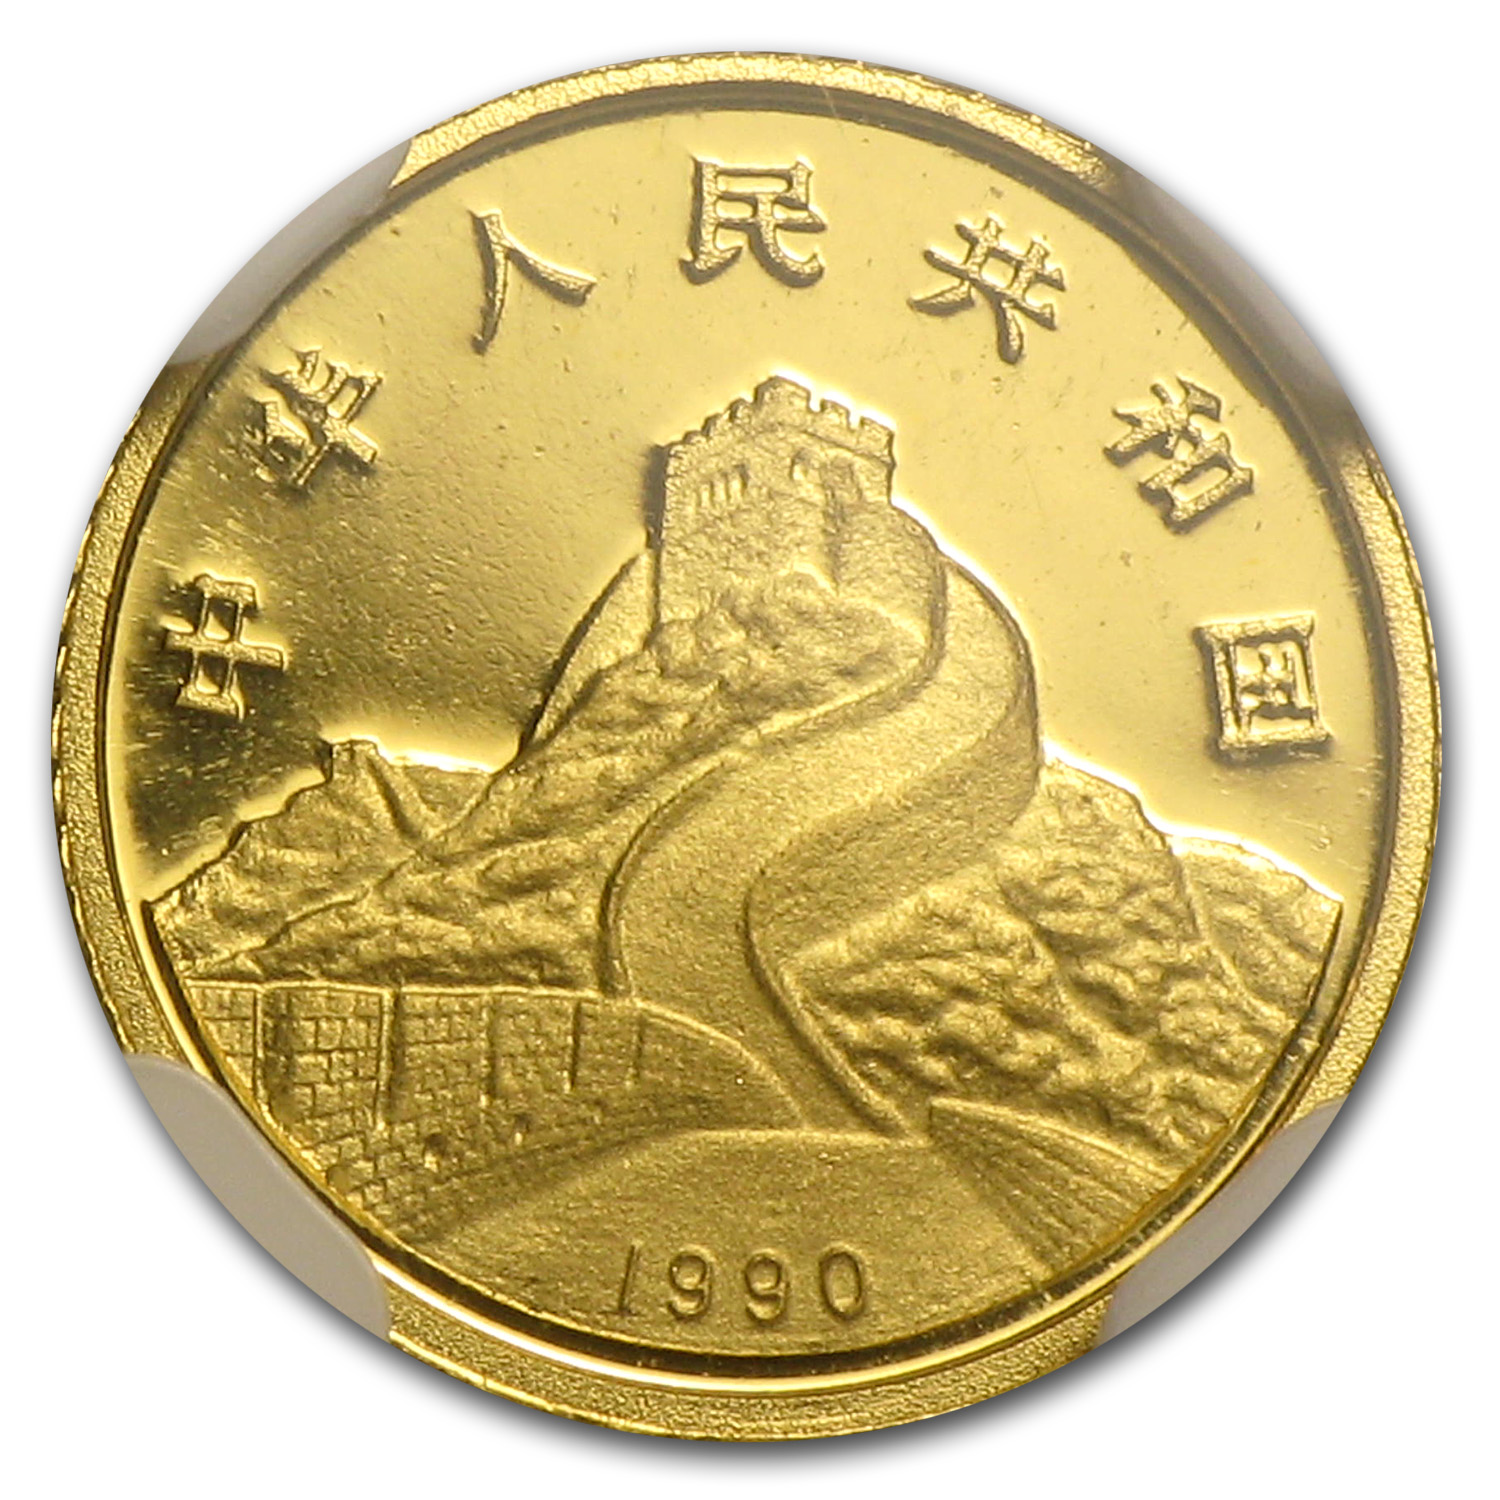 1990 China 1 gram Gold Dragon & Phoenix PF-67 NGC